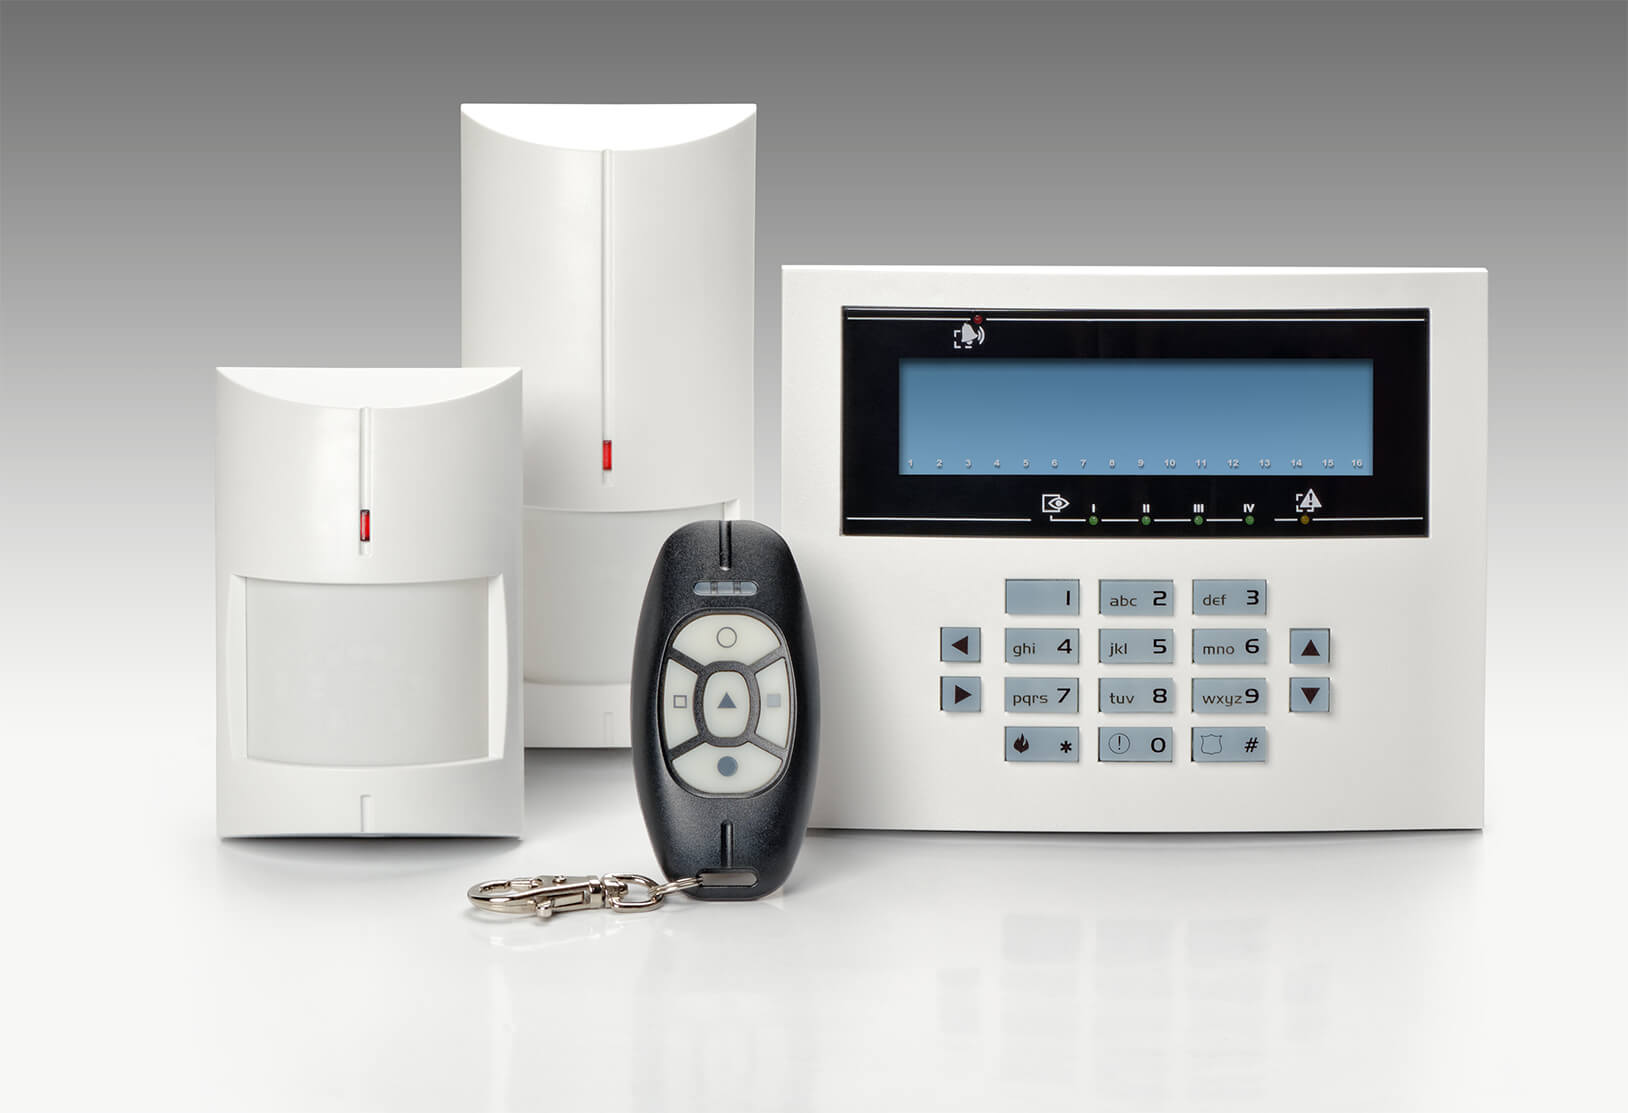 Business & Residential NSI / NACOSS Approved Burglar Alarms In Temple EC4 - Local Temple EC4 security company.Call 02078872244 - Dedicated to Safety & Security. Companies, shops and homes ..